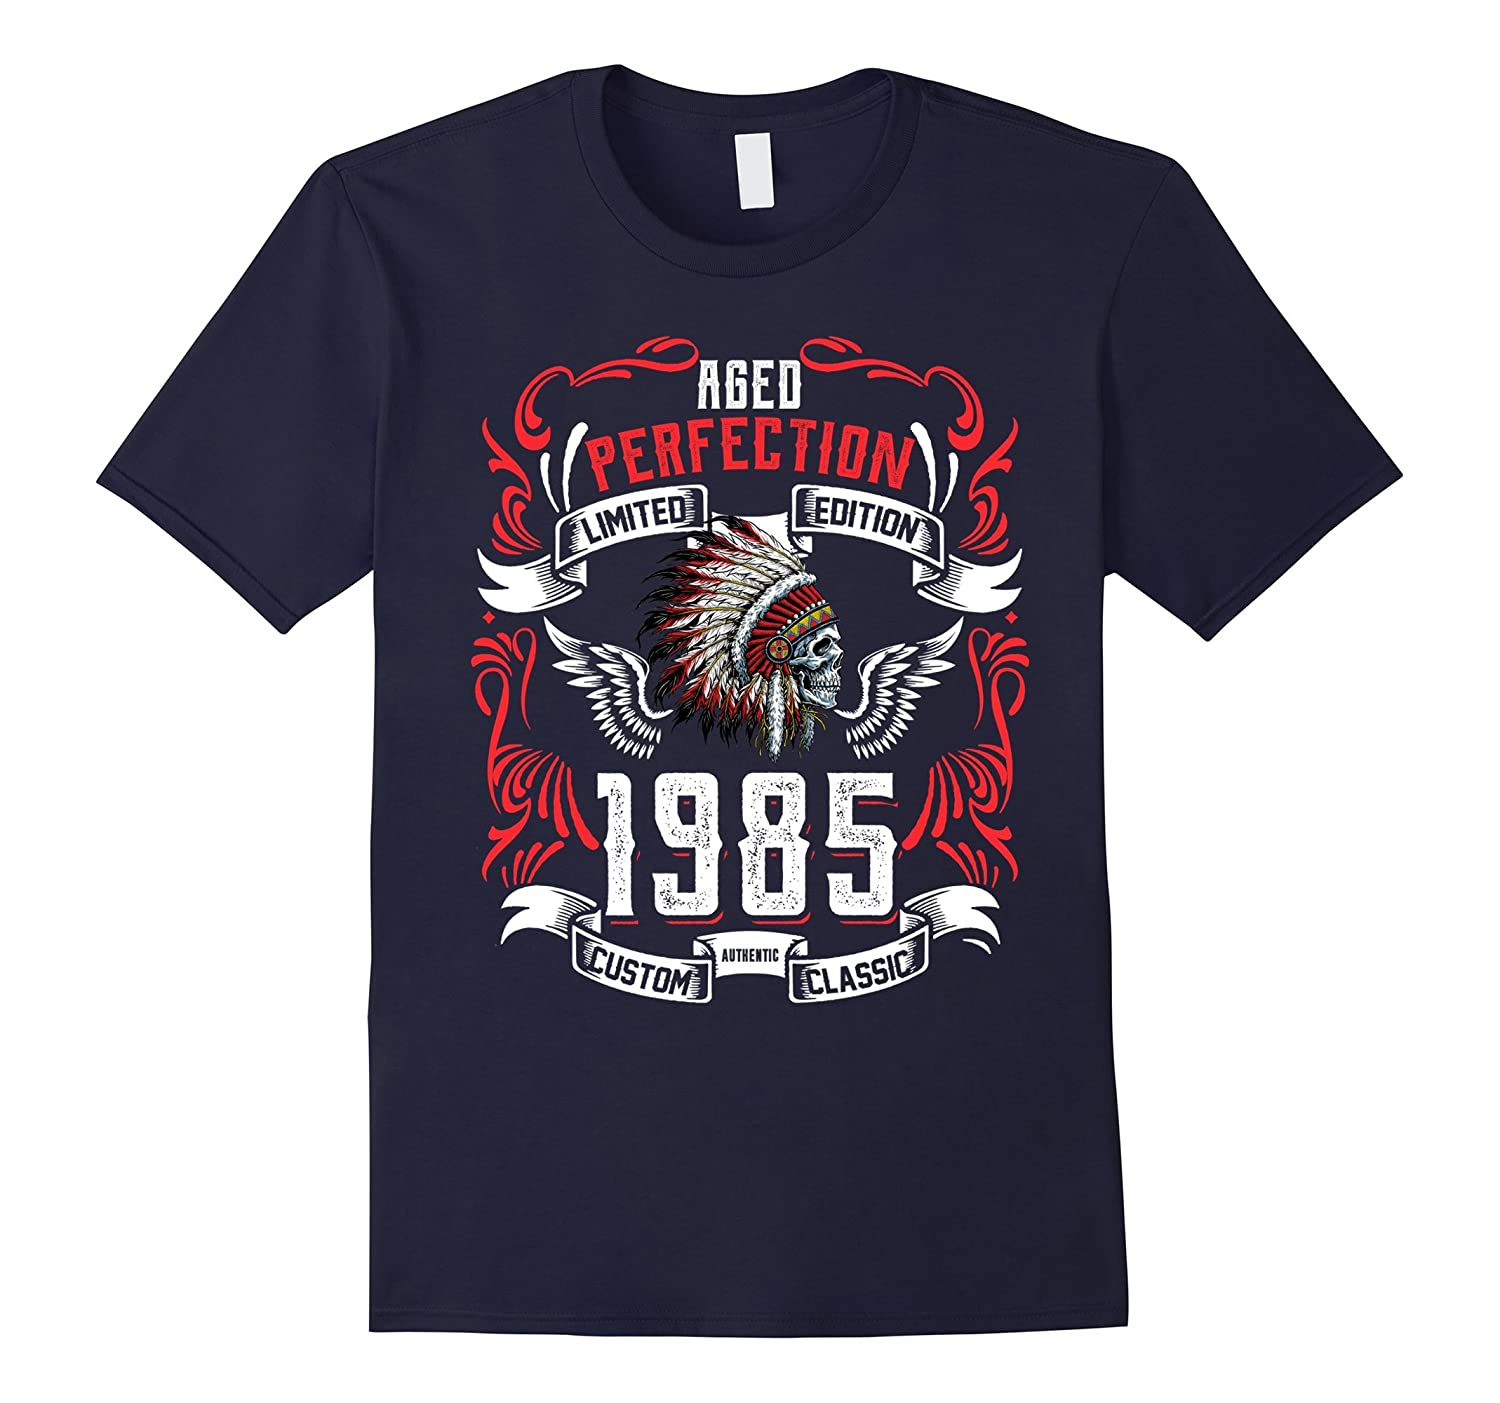 32th Birthday Limited Edition 1985 Tee Shirt-BN